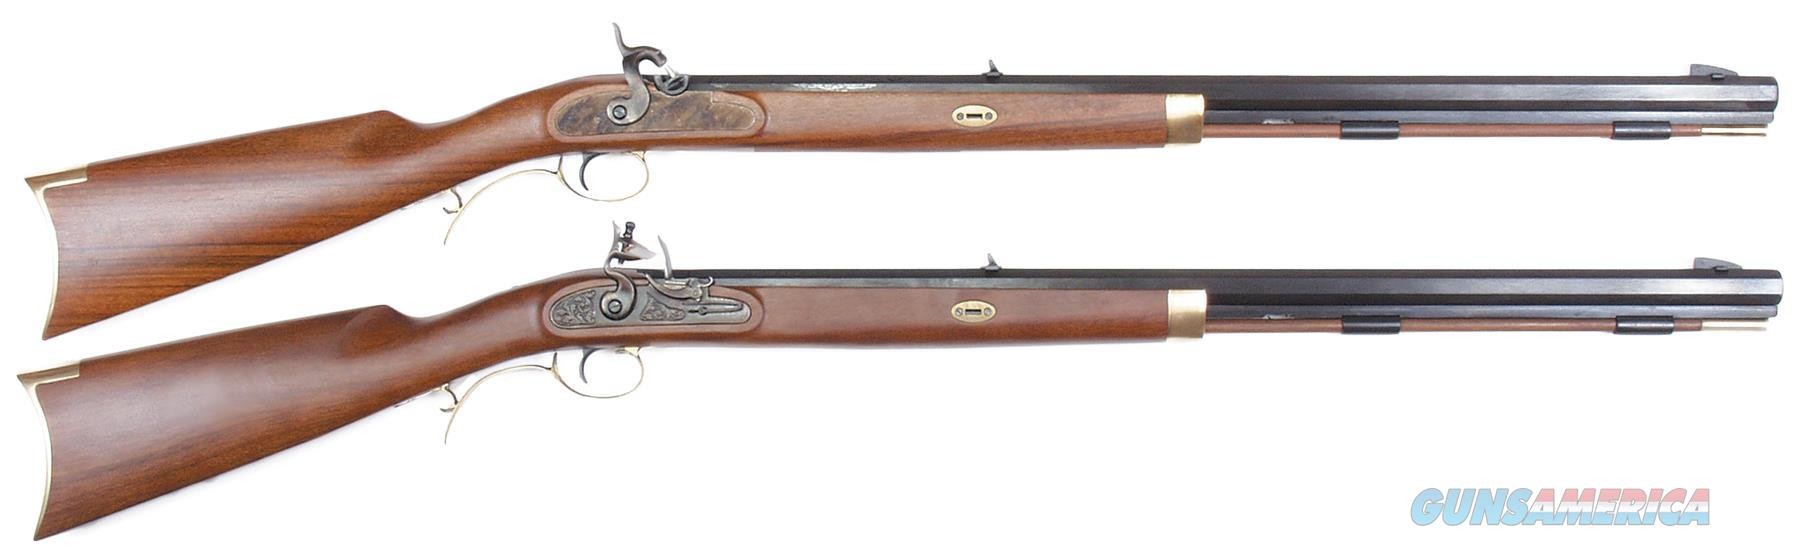 LYMAN TRADE RIFLE 50C PER 6032125  Guns > Rifles > Lyman Muzzleloading Rifles